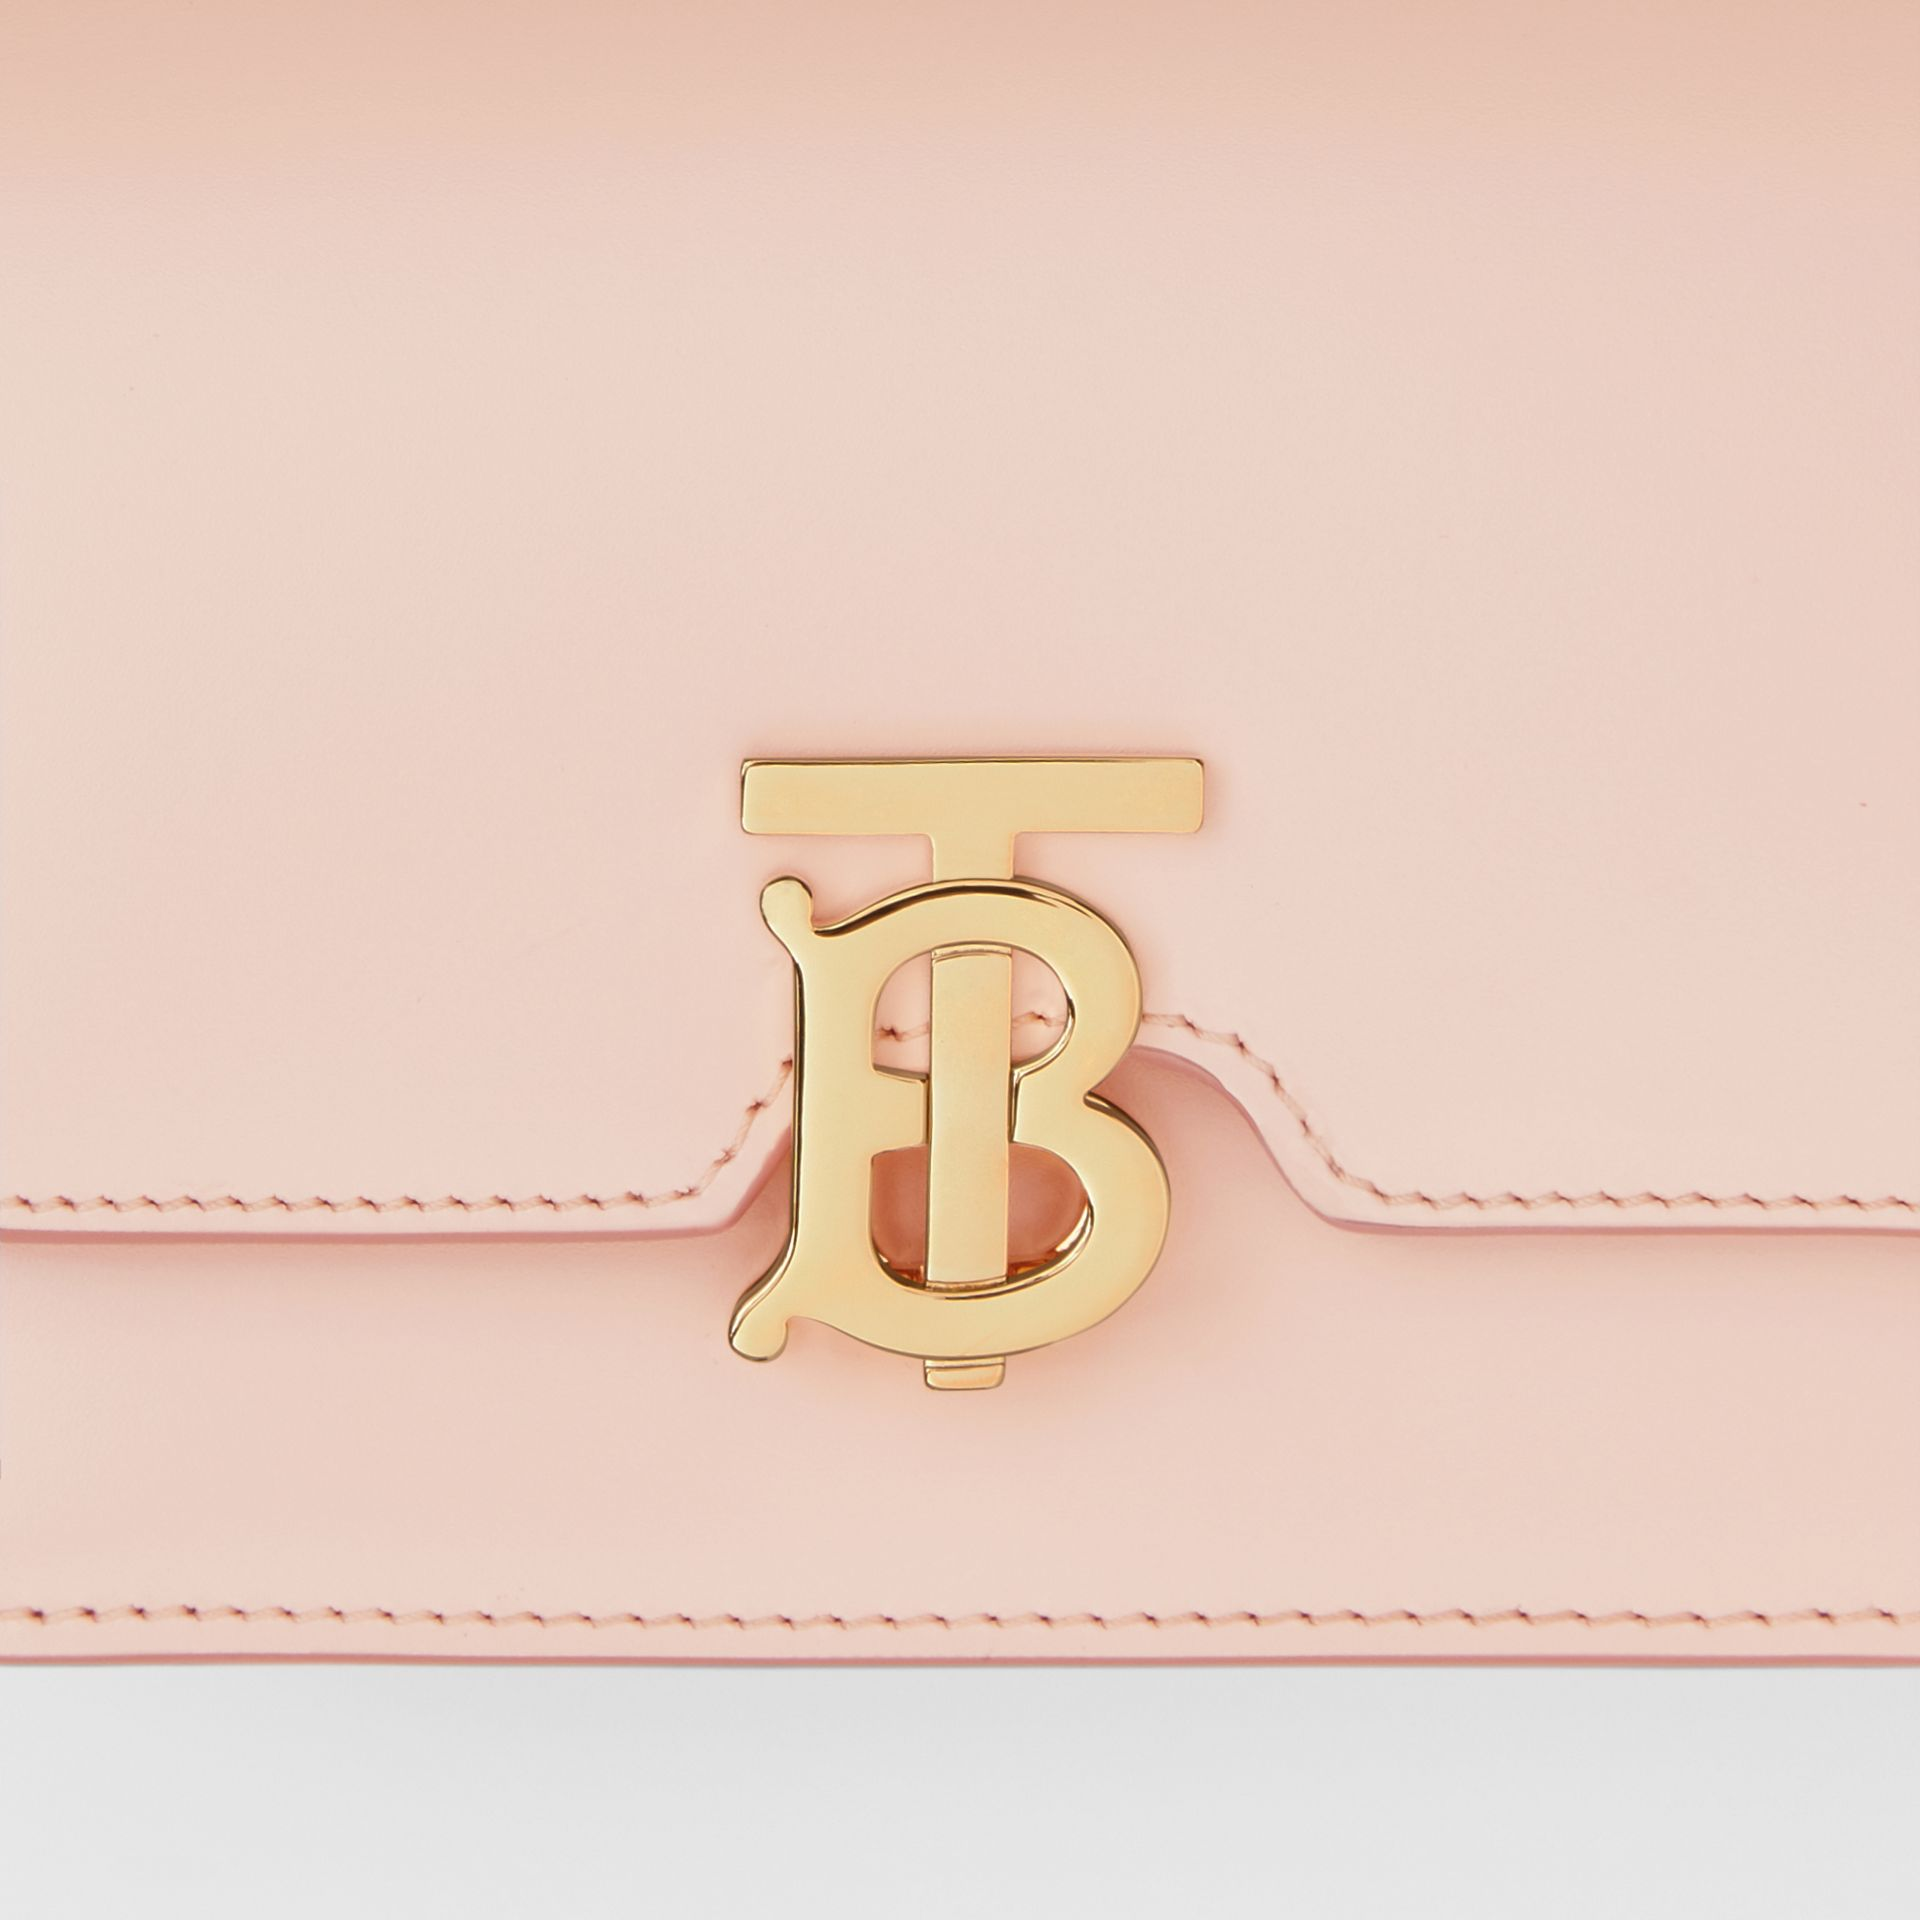 Mini Leather TB Bag in Rose Beige - Women | Burberry United States - gallery image 1